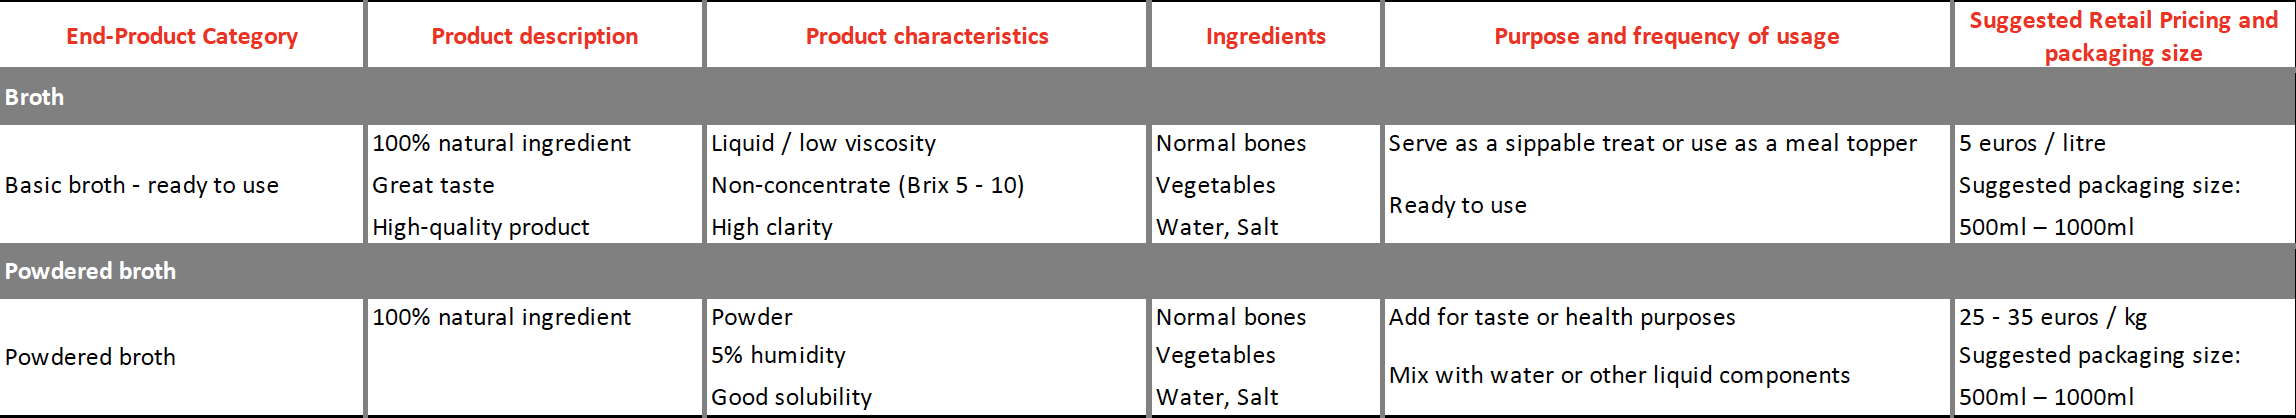 Bone Broth applications - Products Petfood